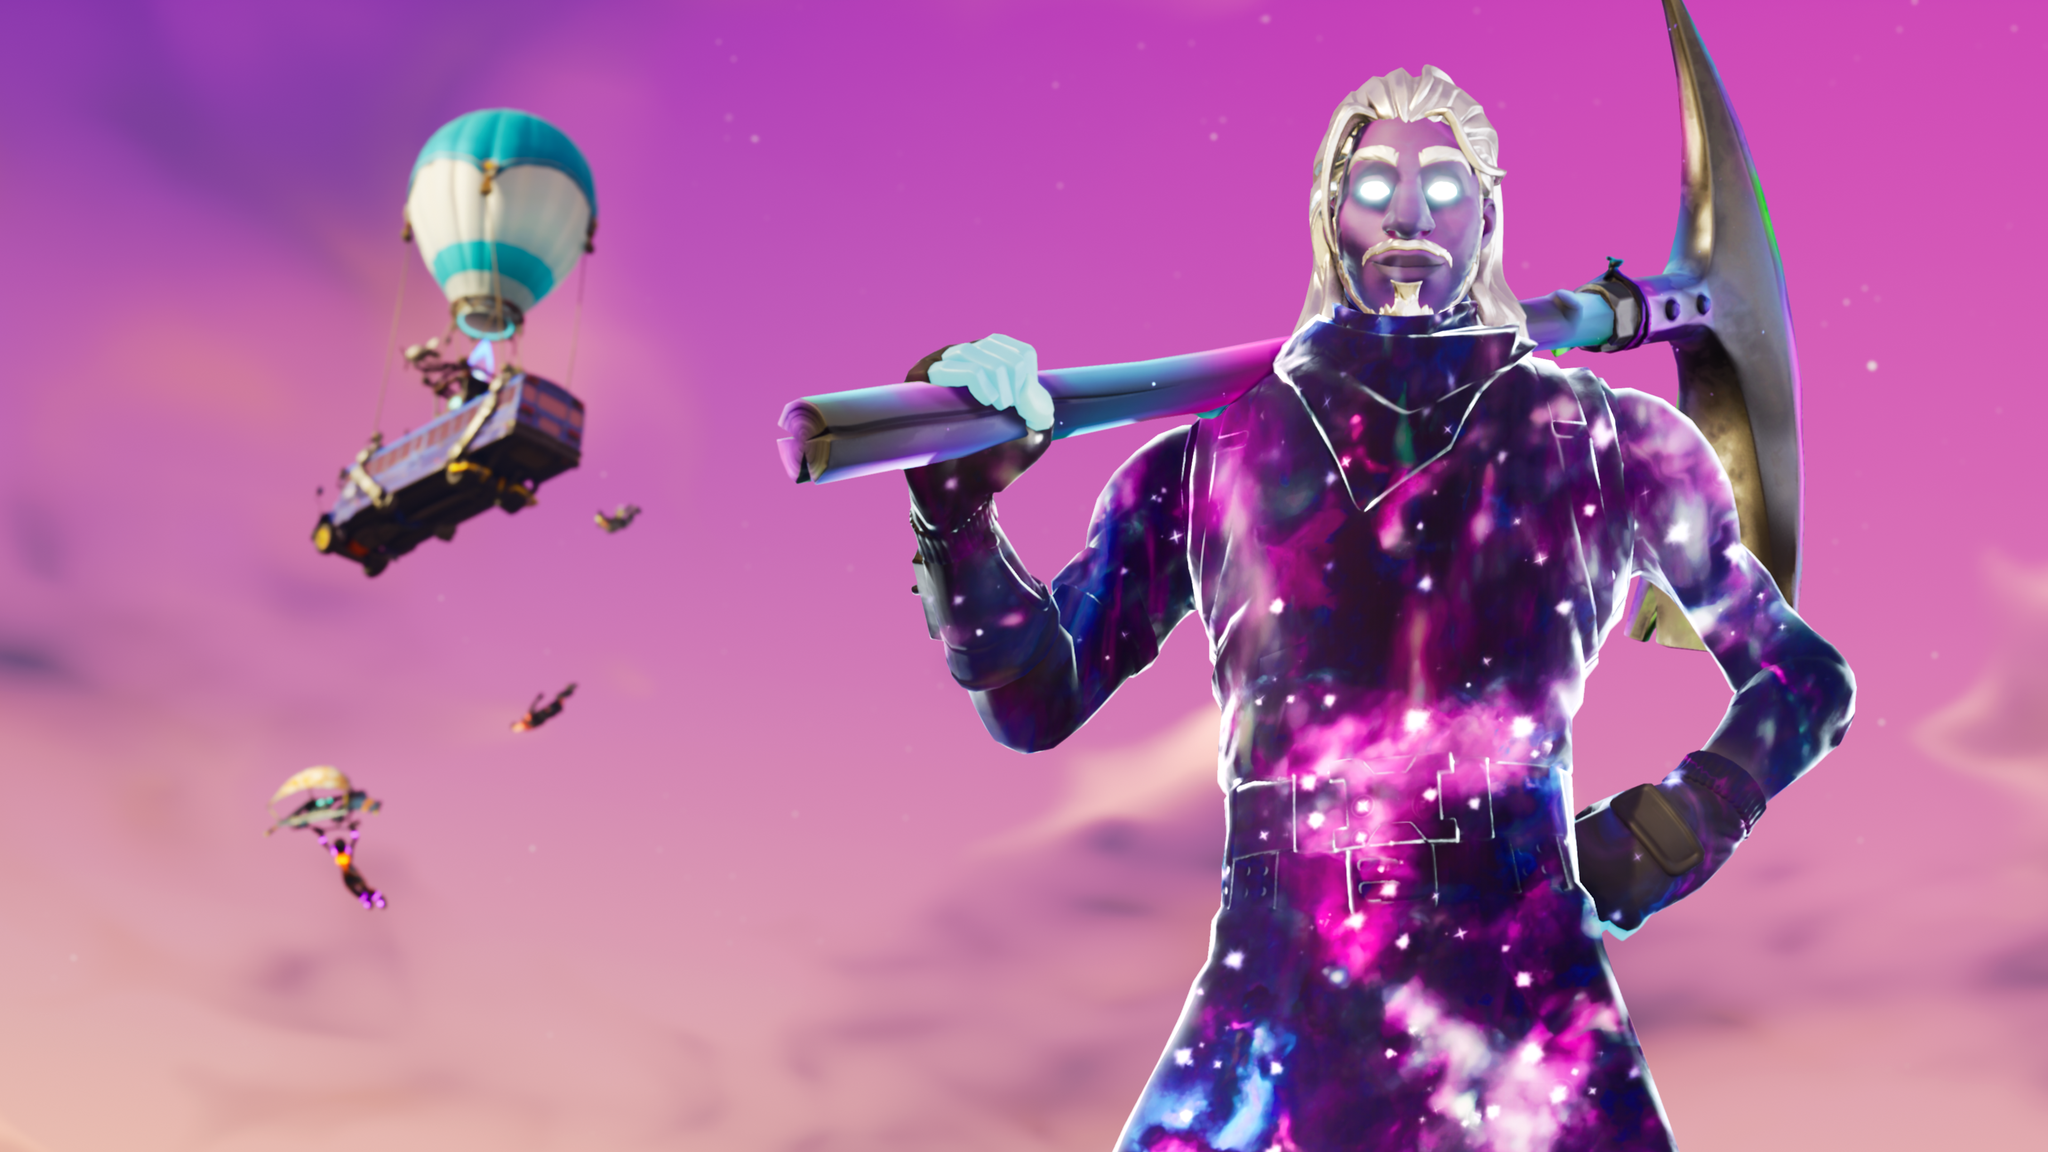 Free Download Samsung Galaxy Squad Contest Winner Can Play Fortnite With Ninja 2048x1152 For Your Desktop Mobile Tablet Explore 18 Fortnite Galaxy Skin Wallpapers Fortnite Galaxy Skin Wallpapers Galaxy